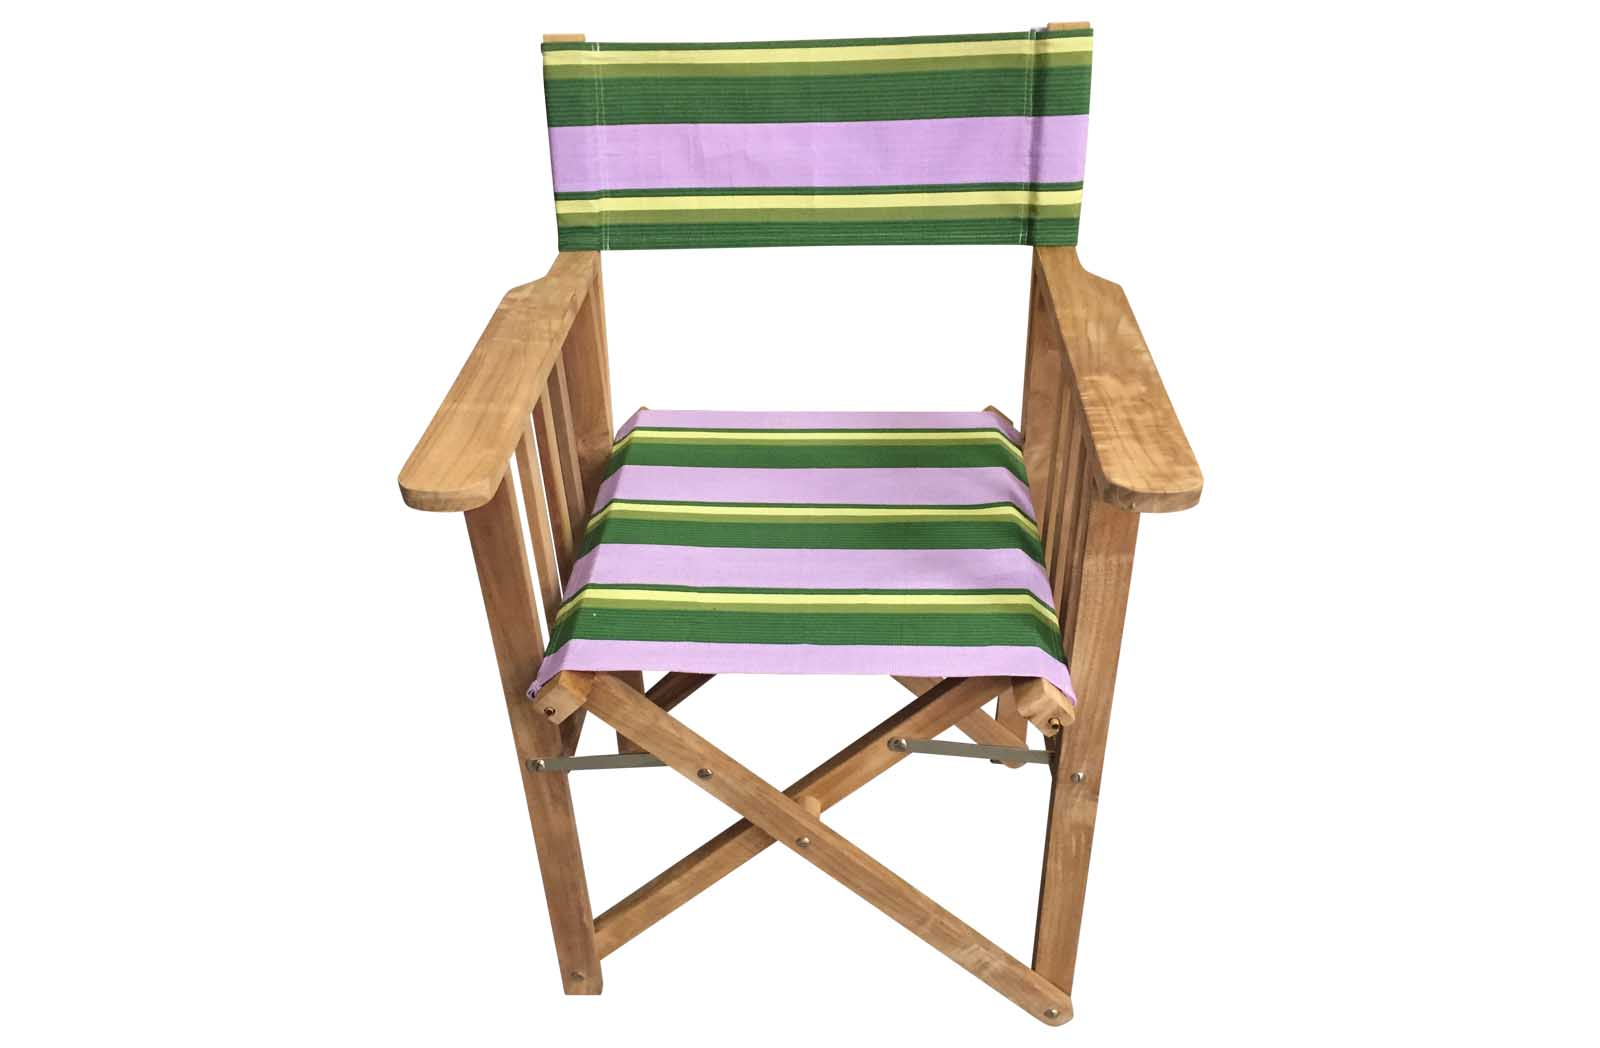 lilac, lime, dark green - Directors Chairs